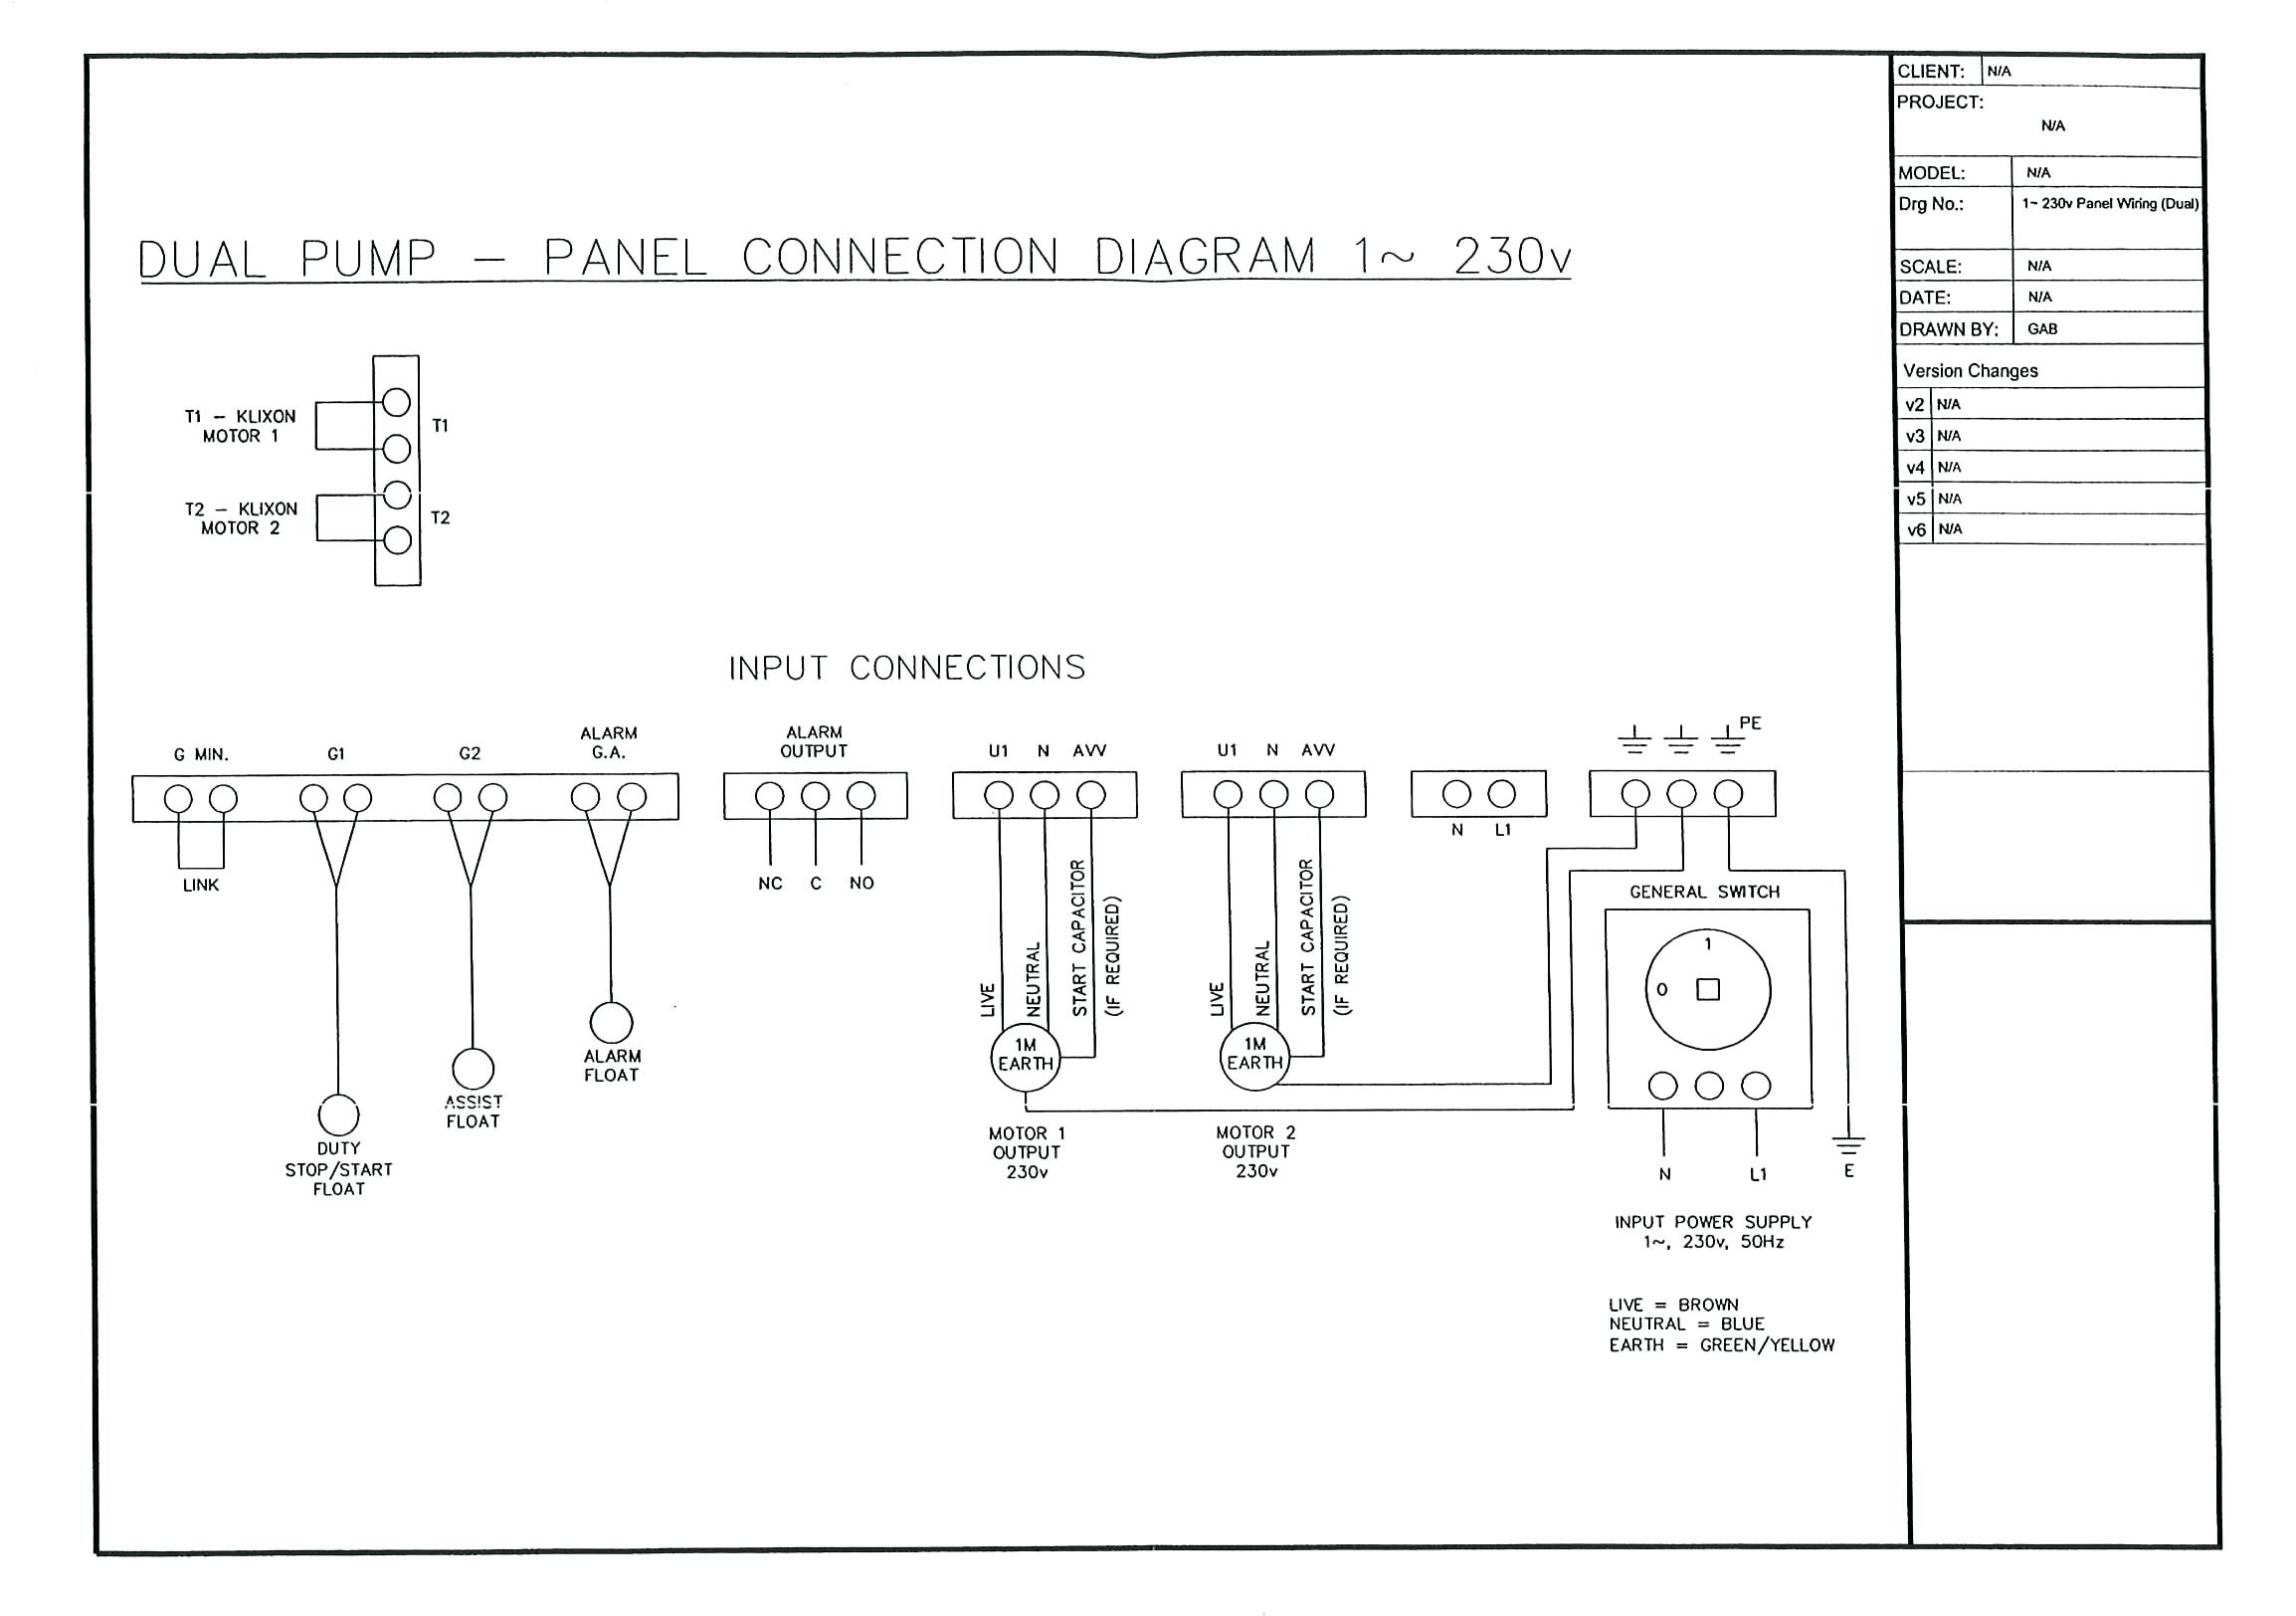 orenco systems control panel wiring diagram Download-Wiring Diagram Pics Detail Name orenco systems control panel 10-r